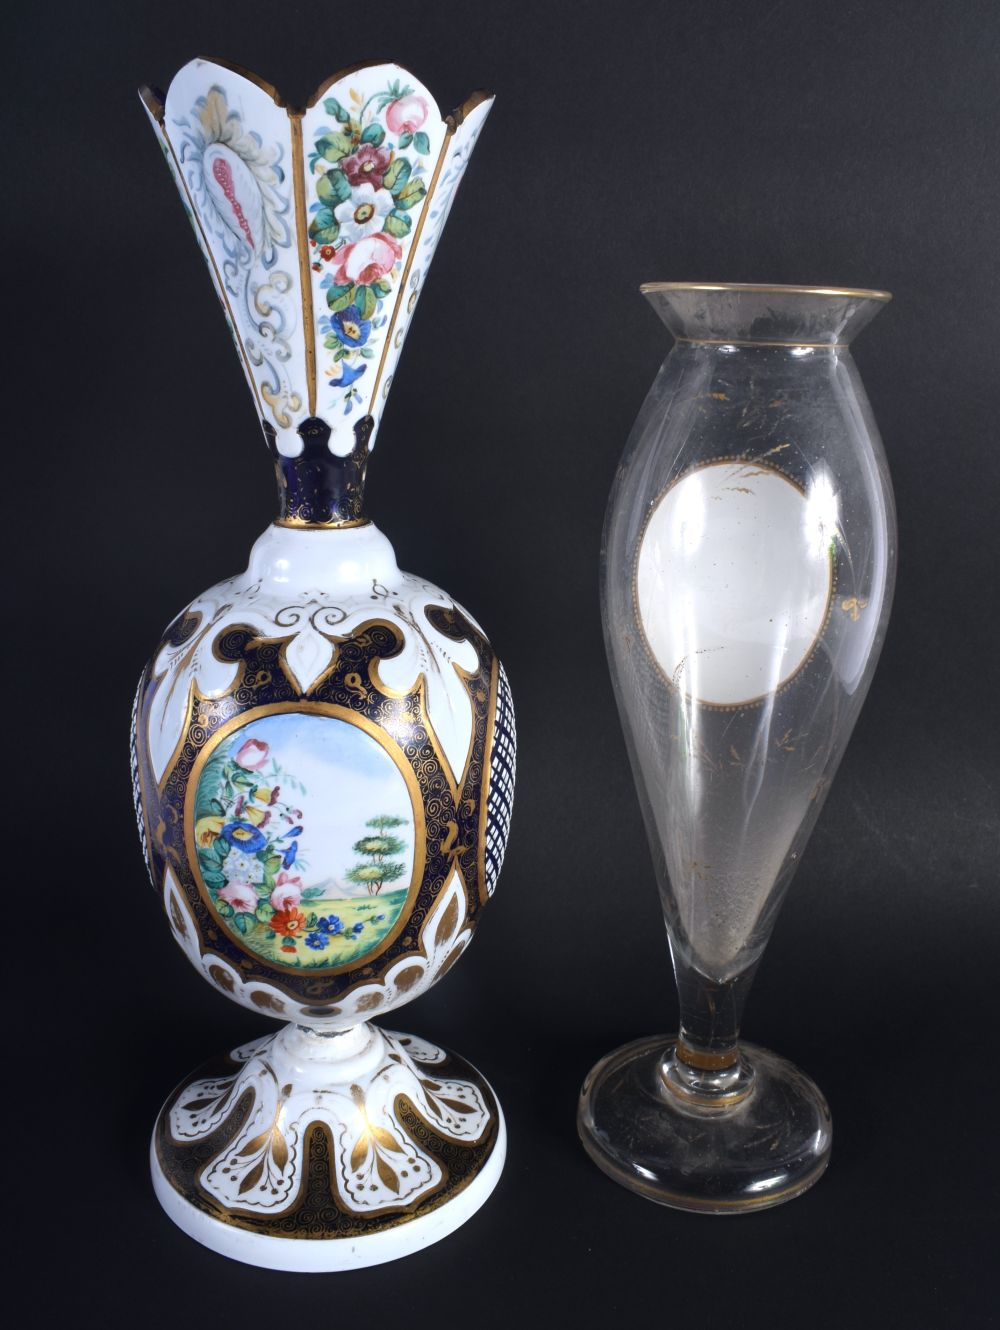 AN ANTIQUE BOHEMIAN ENAMELLED GLASS VASE together with a bohemian portrait vase. 32 cm high. (2) - Image 2 of 2